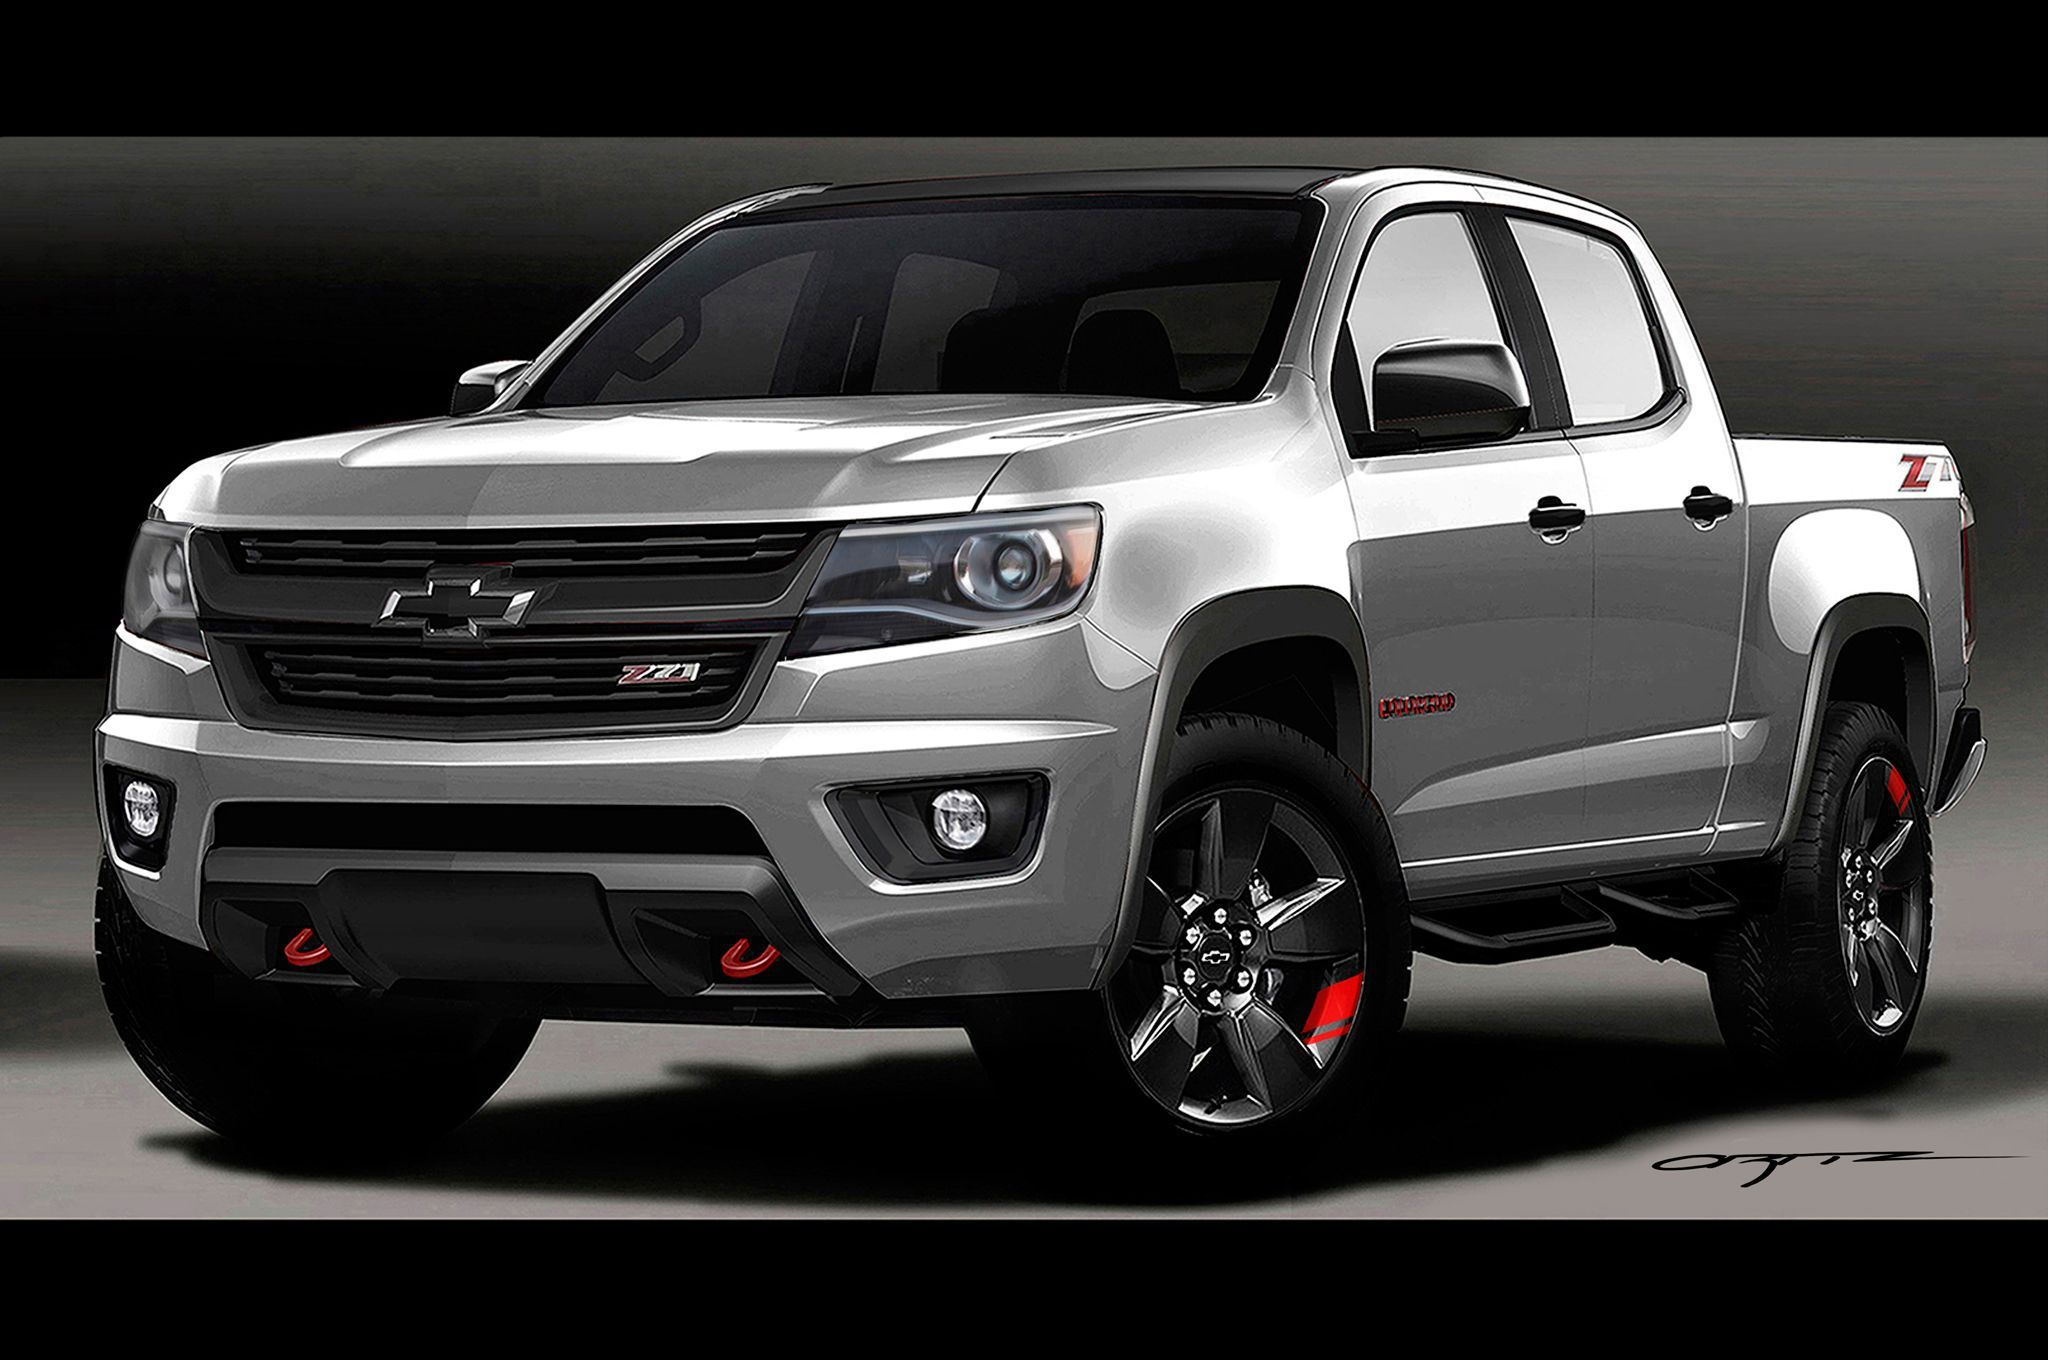 2020 Chevy Colorado Redesign, Release Date and Price ...